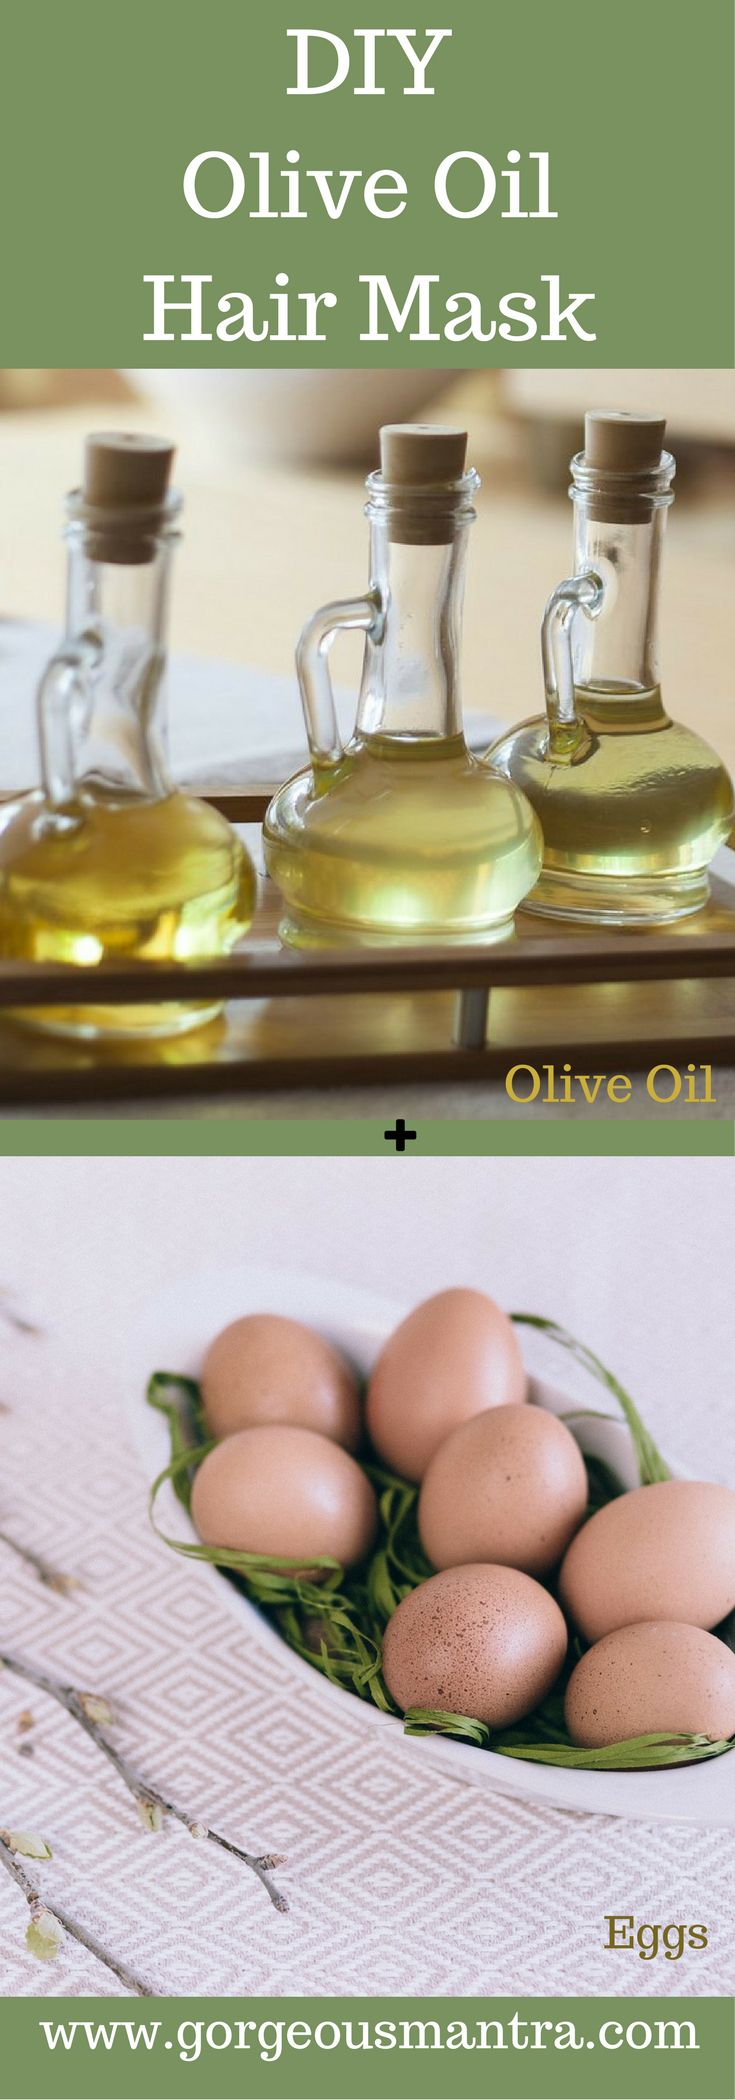 Use this DIY olive oil hair mask for conditioning hair and improving hair growth.